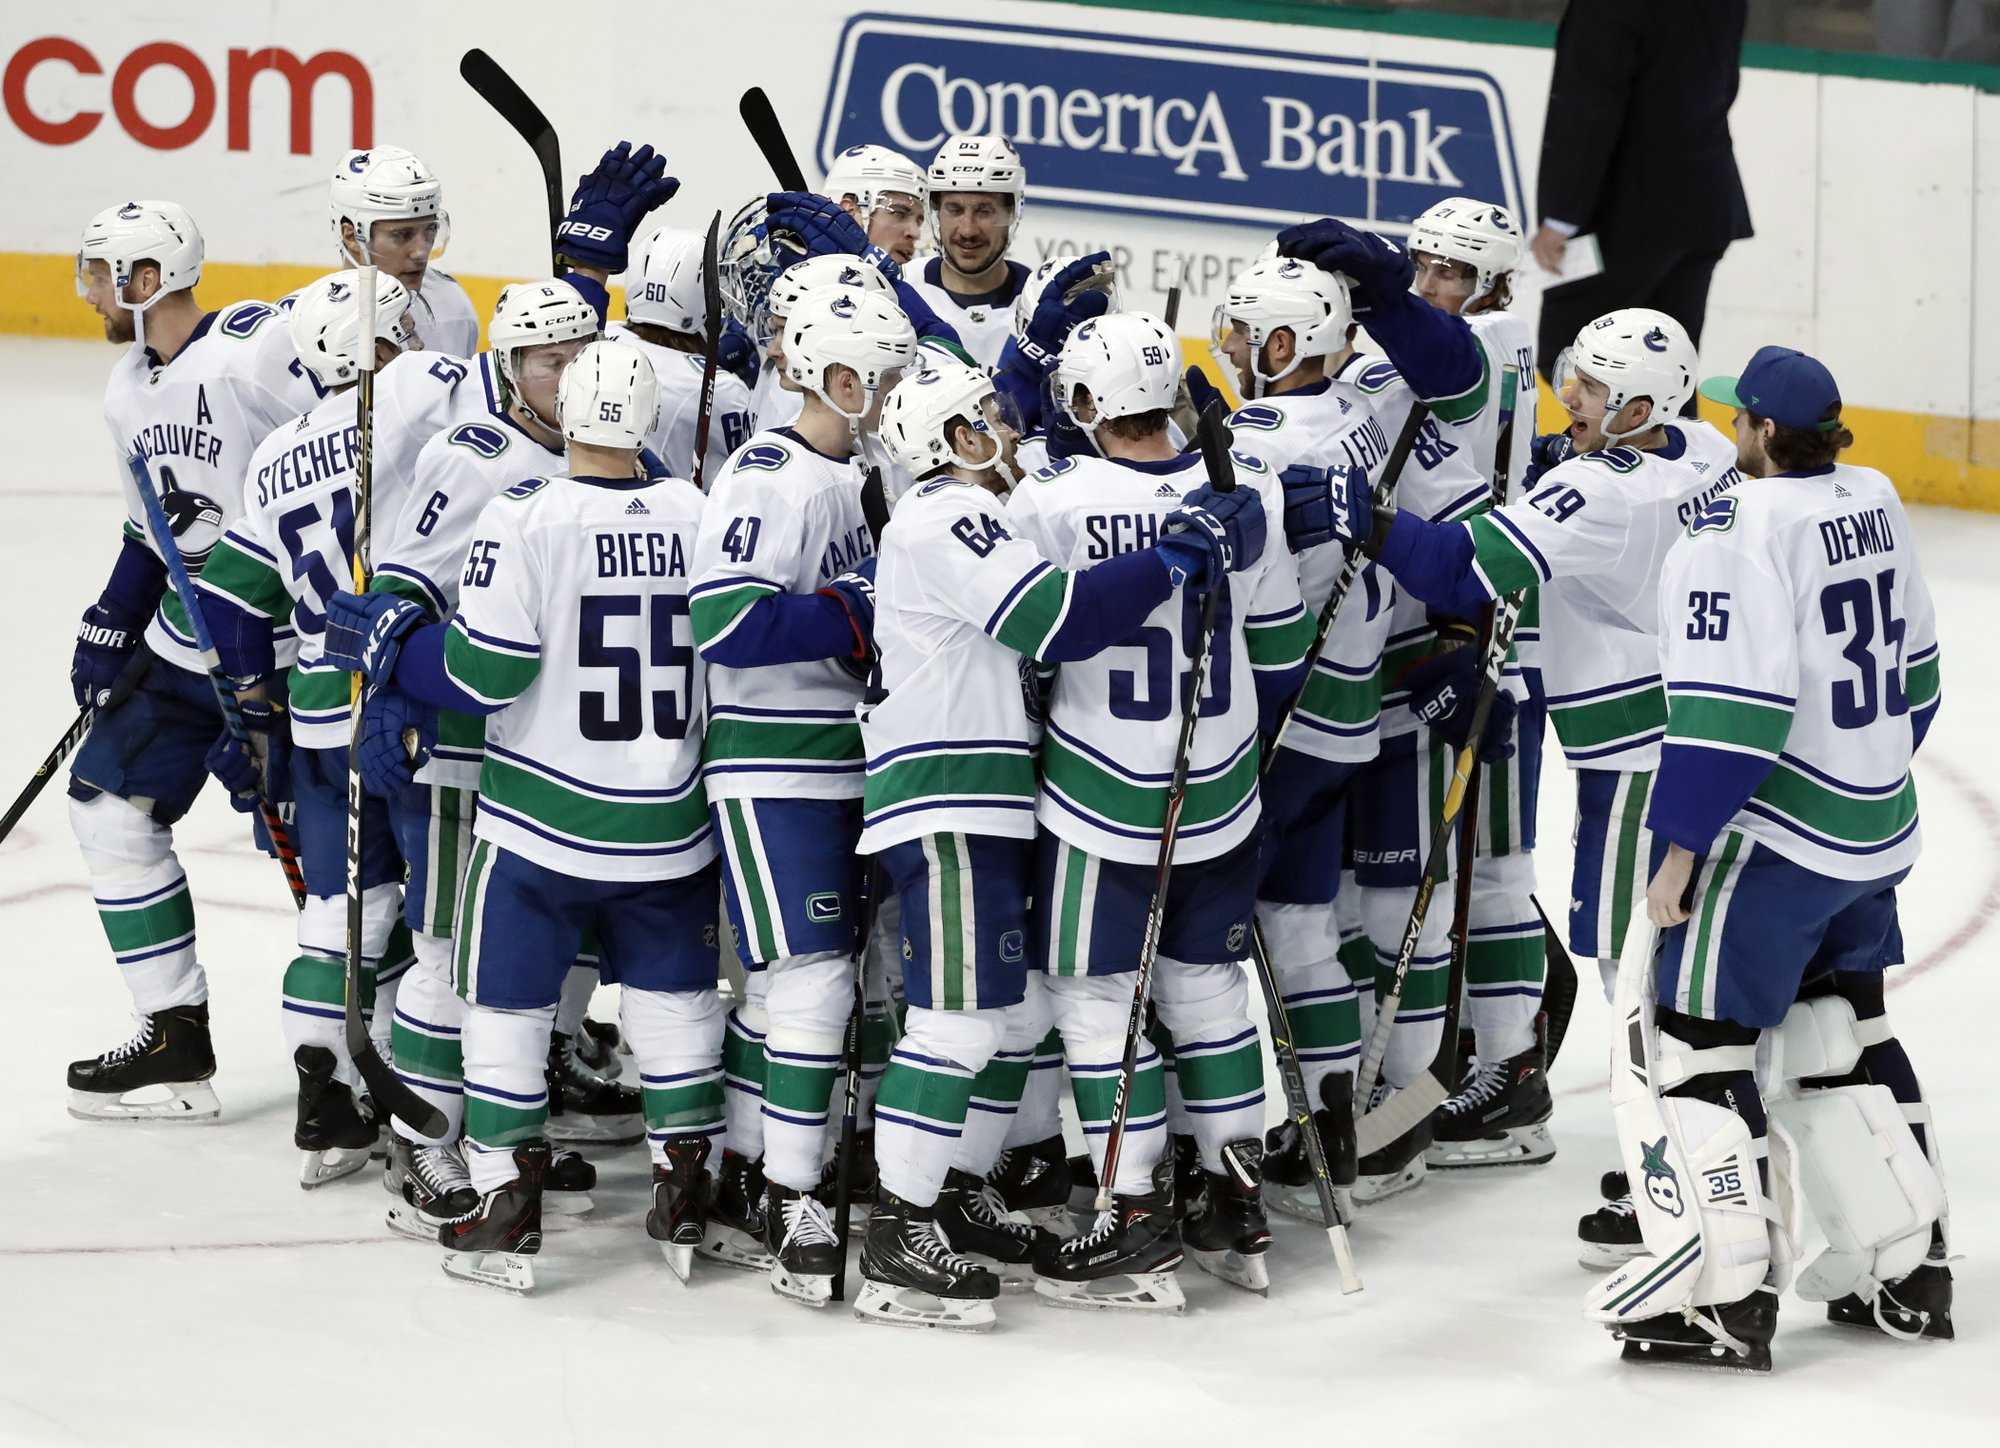 Leivo scores in shootout, Canucks beat Stars 3-2